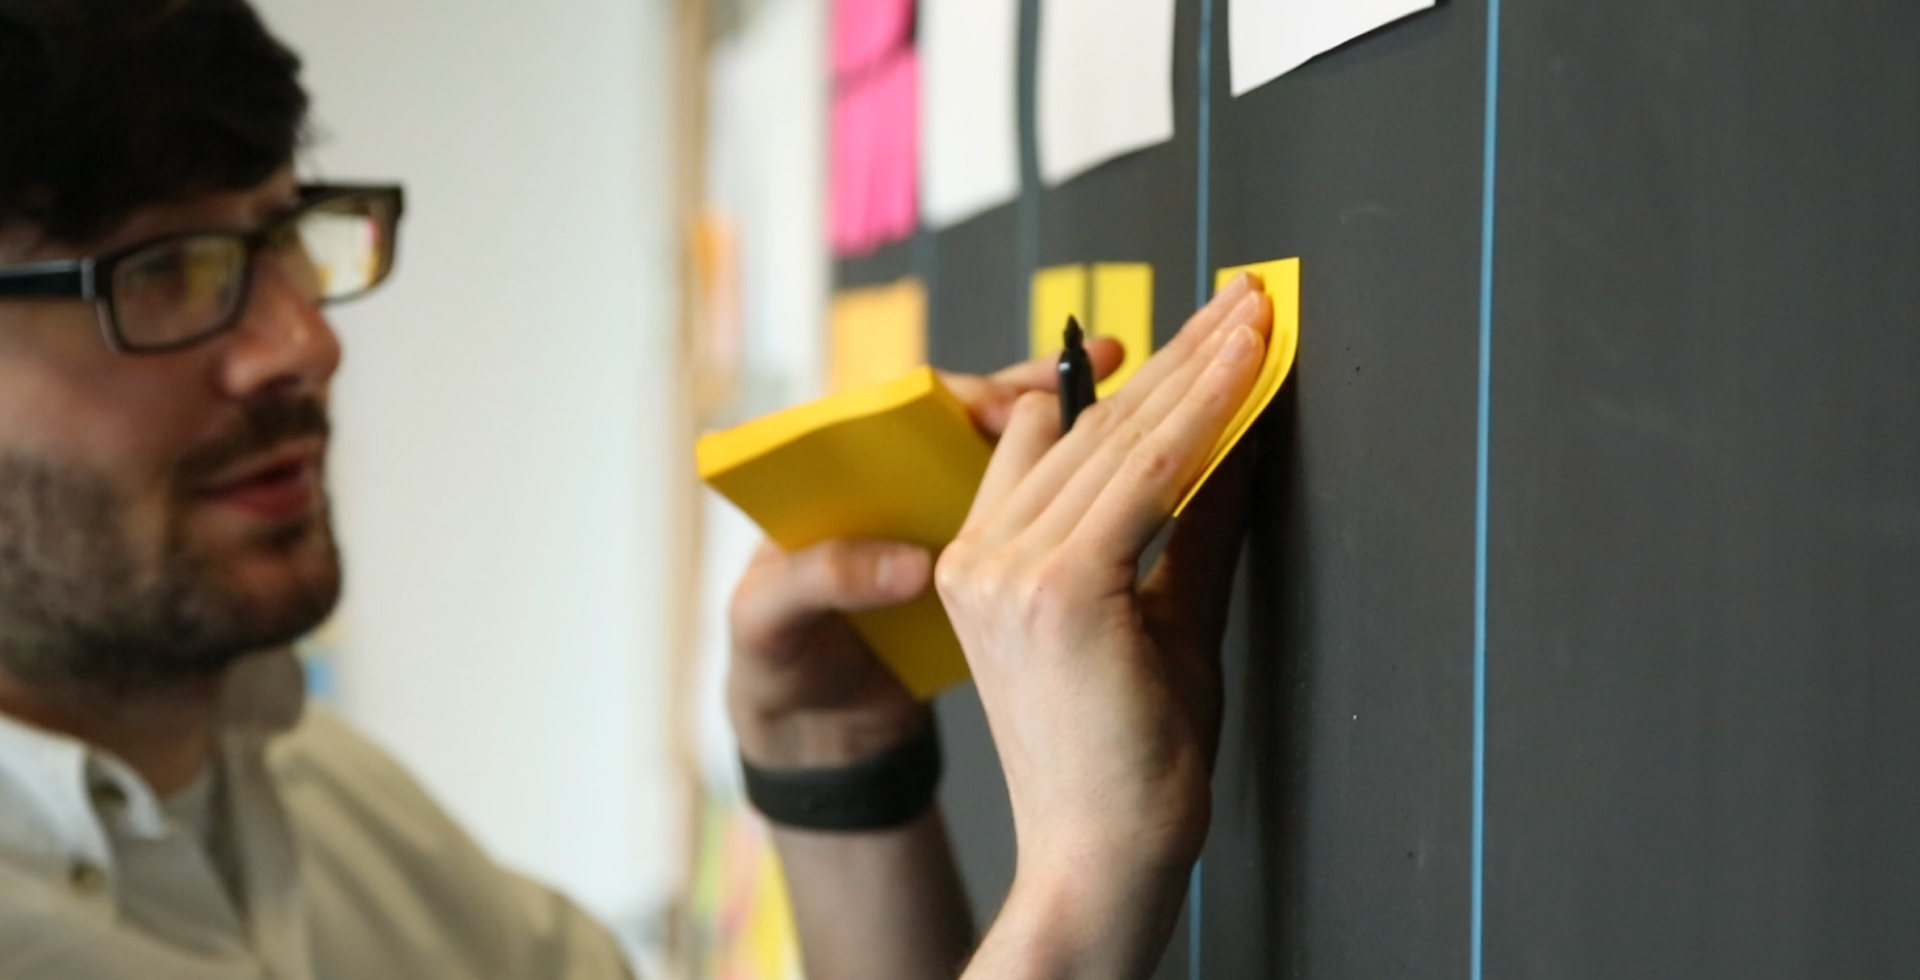 Development process using Post-it Notes